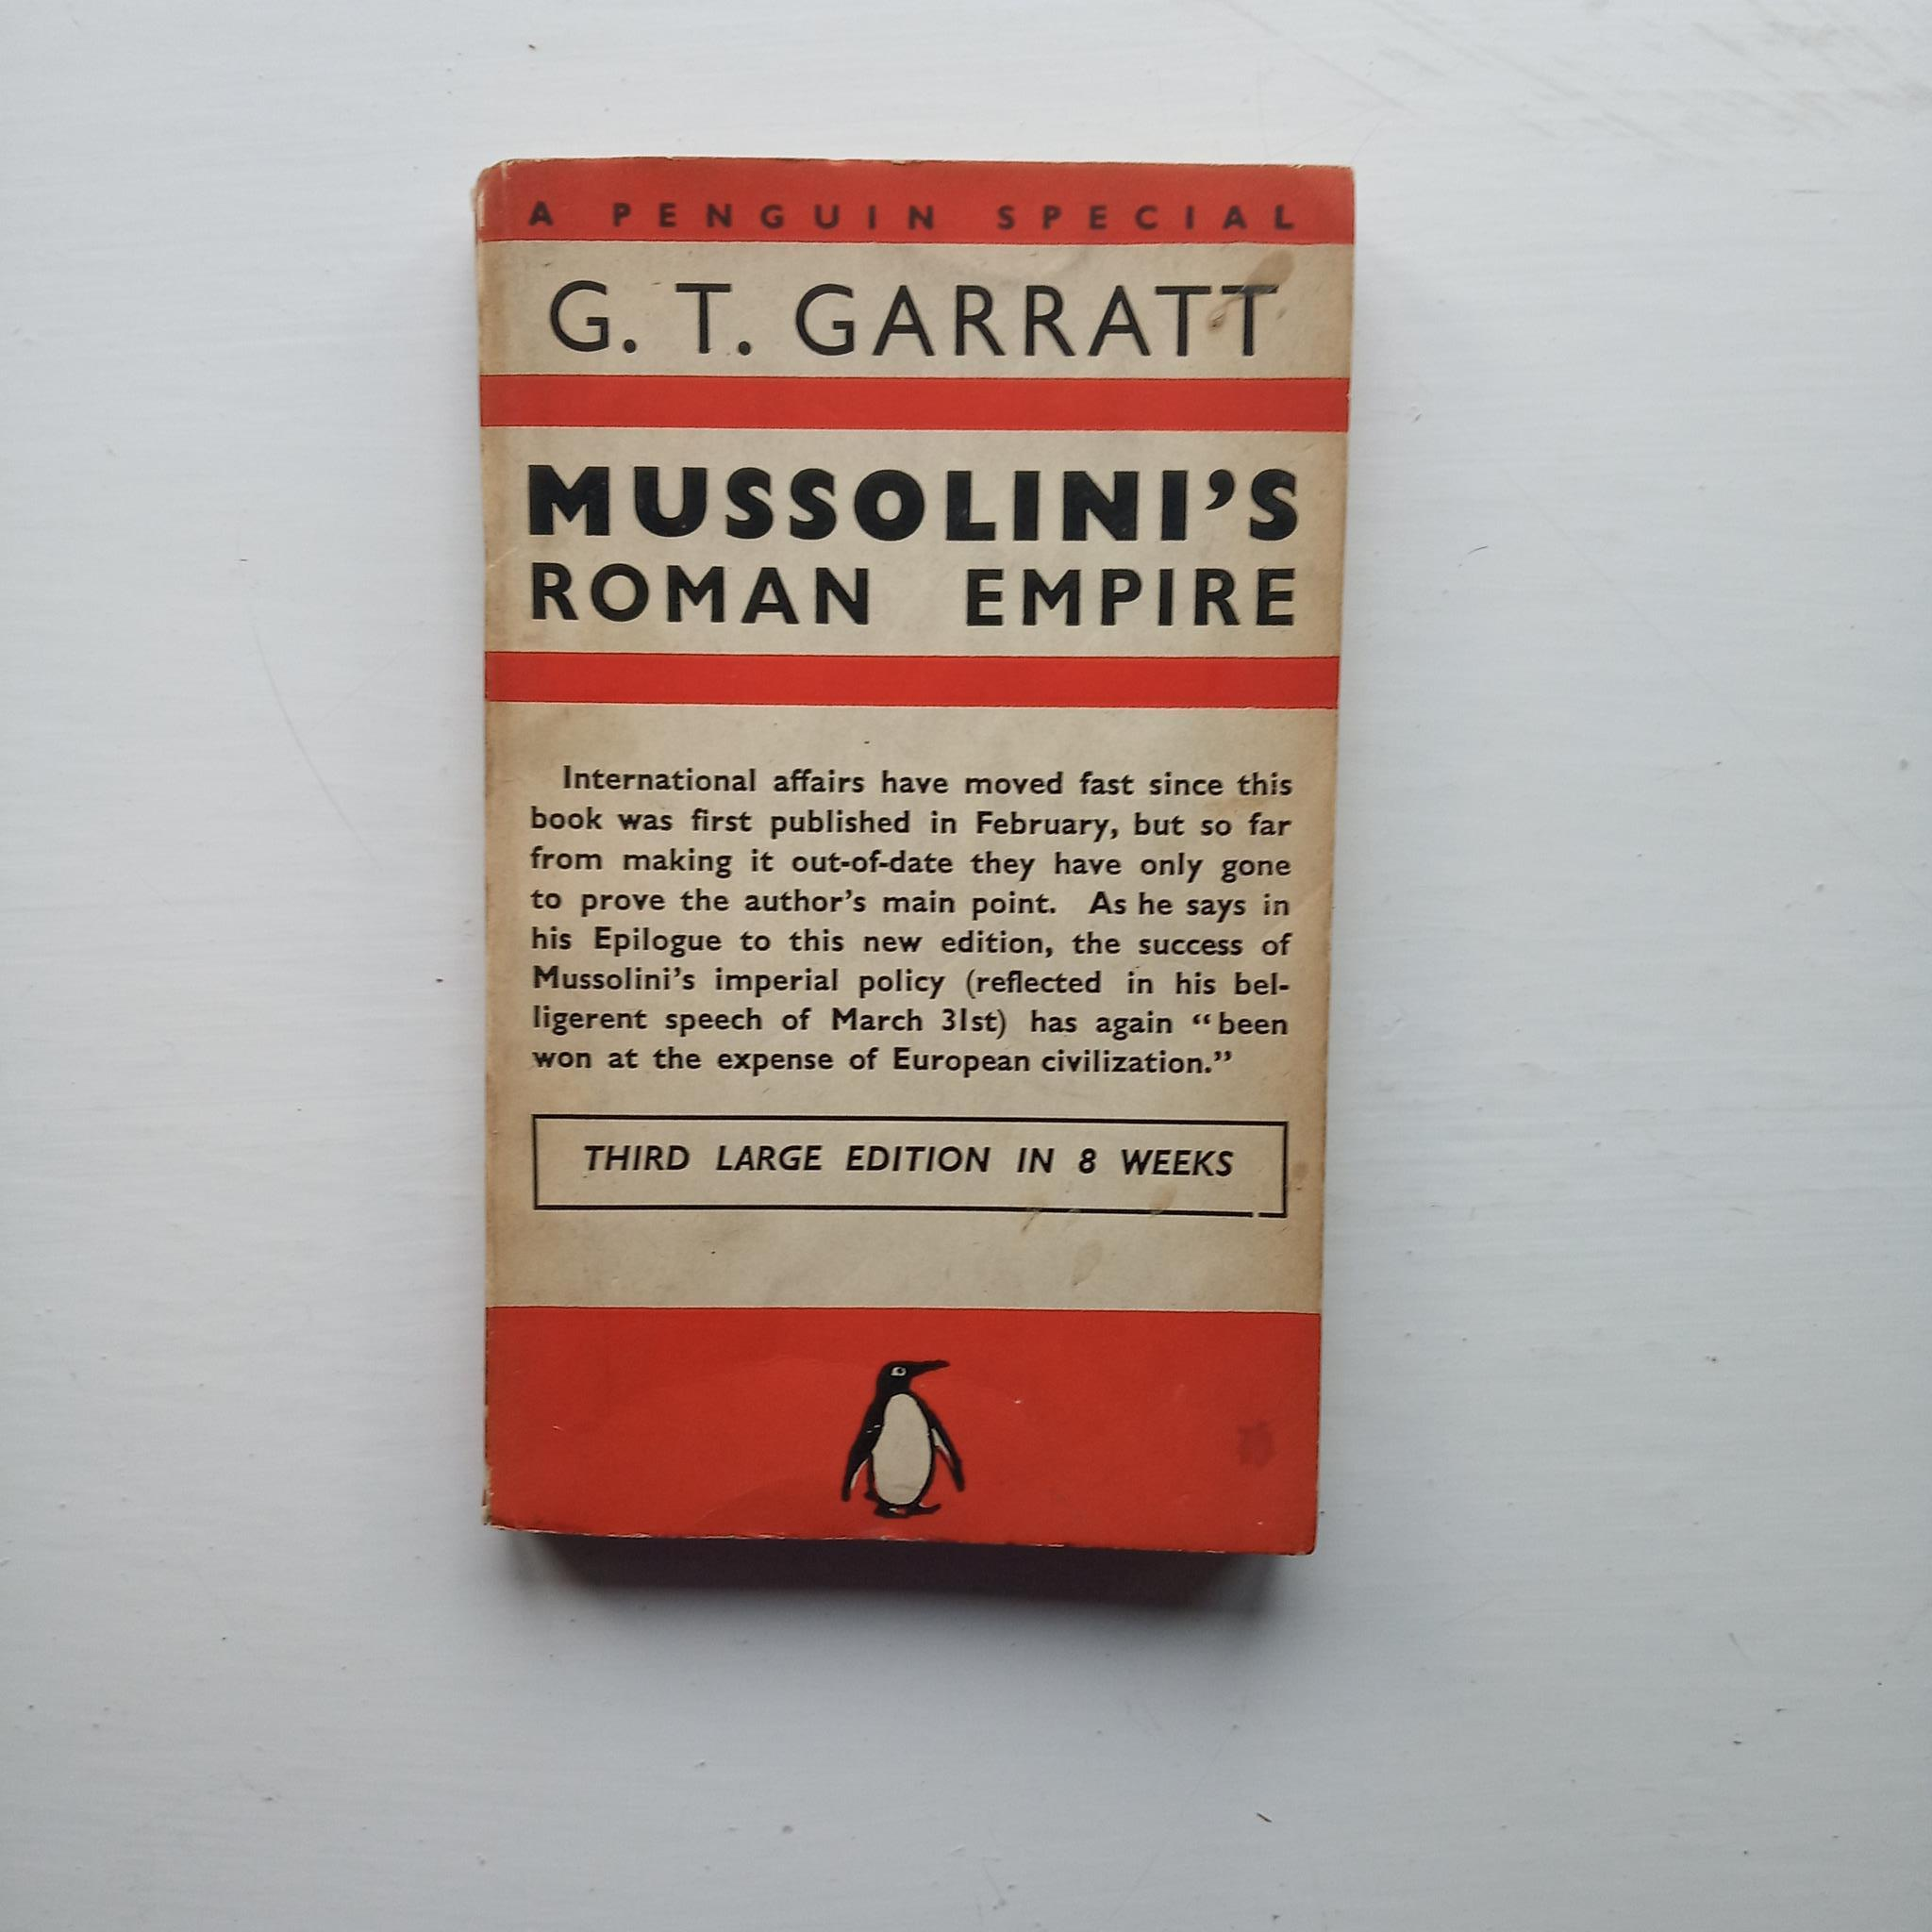 Mussolini's Roman Empire by G.T. Garratt